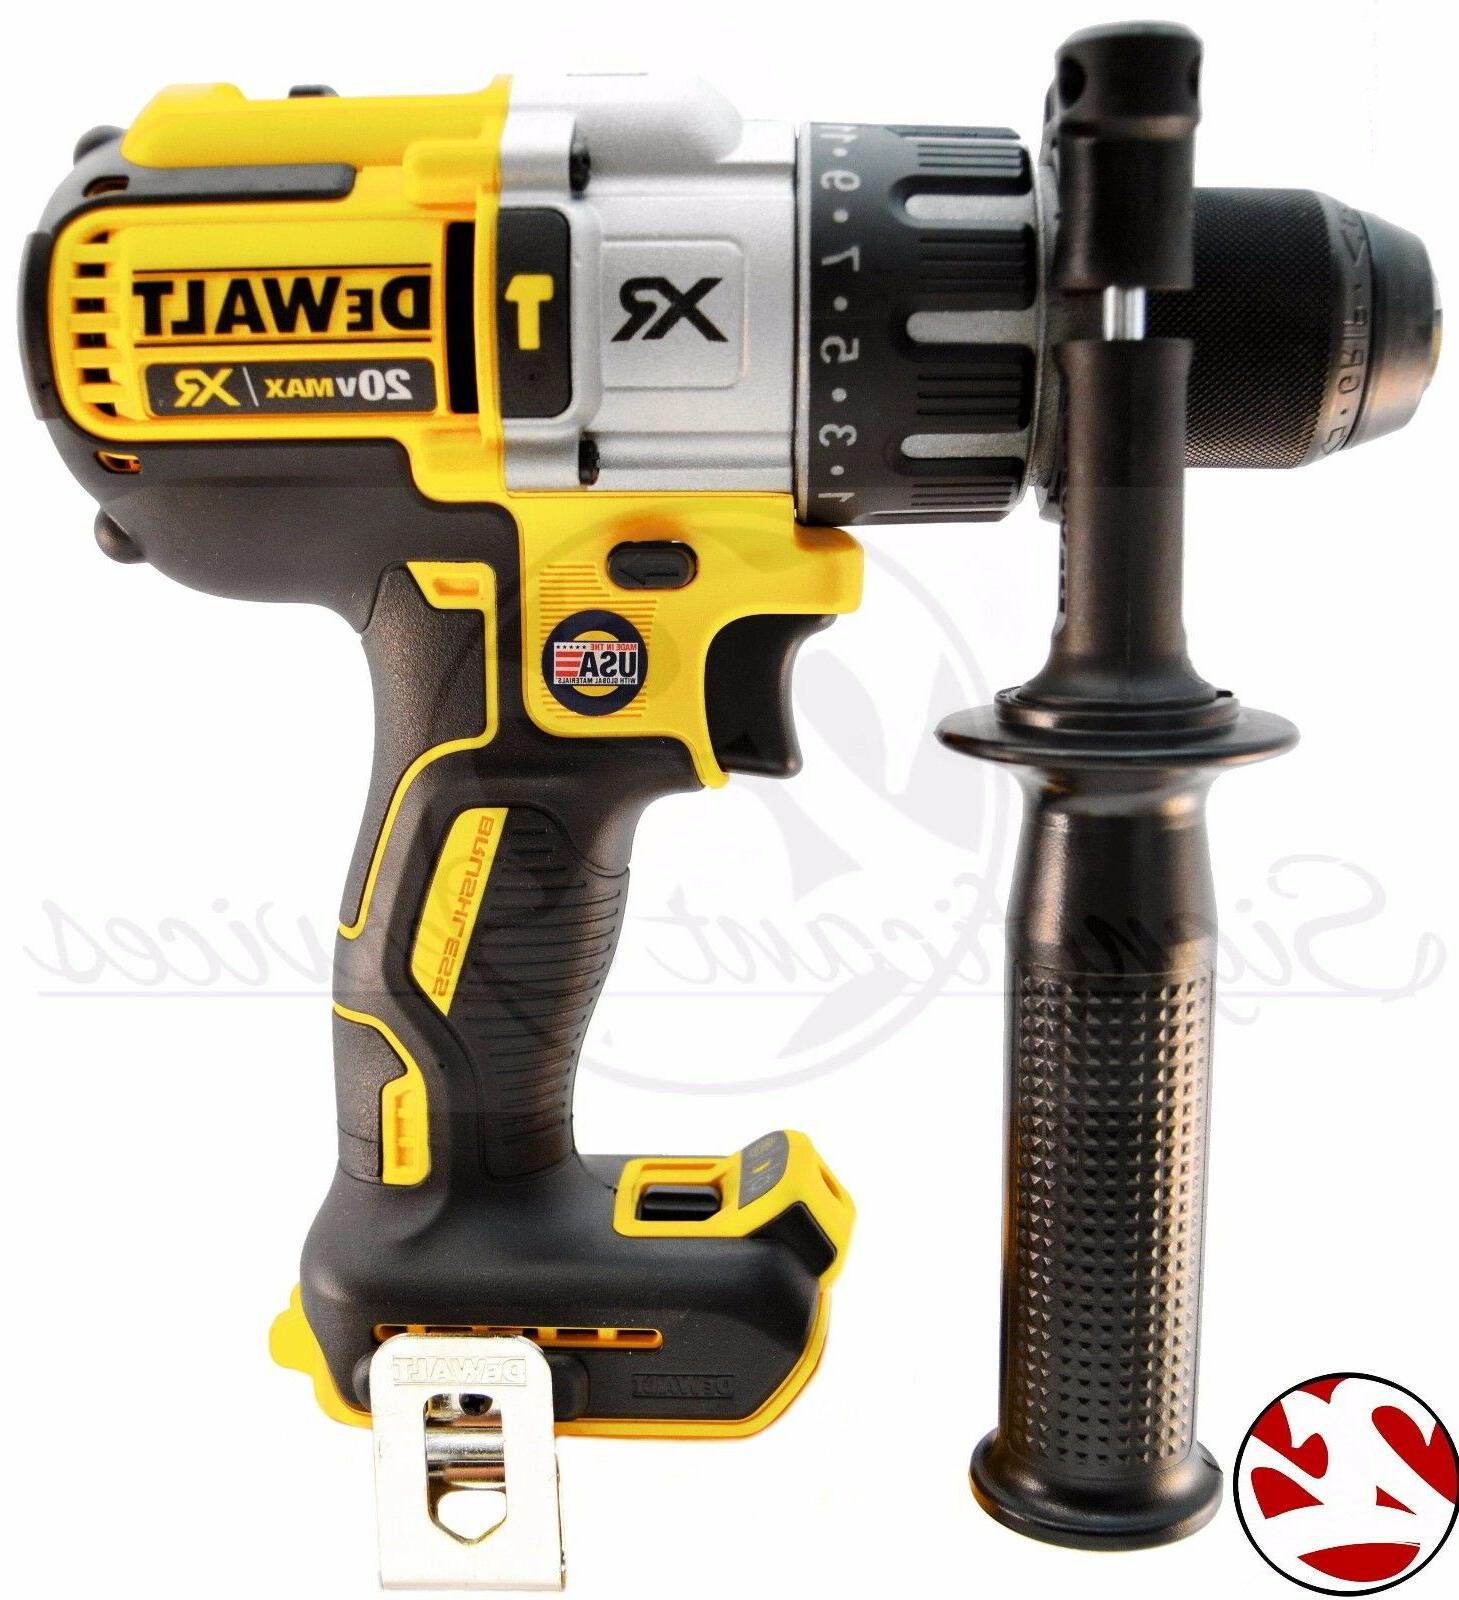 dcd996 max xr brushless hammer